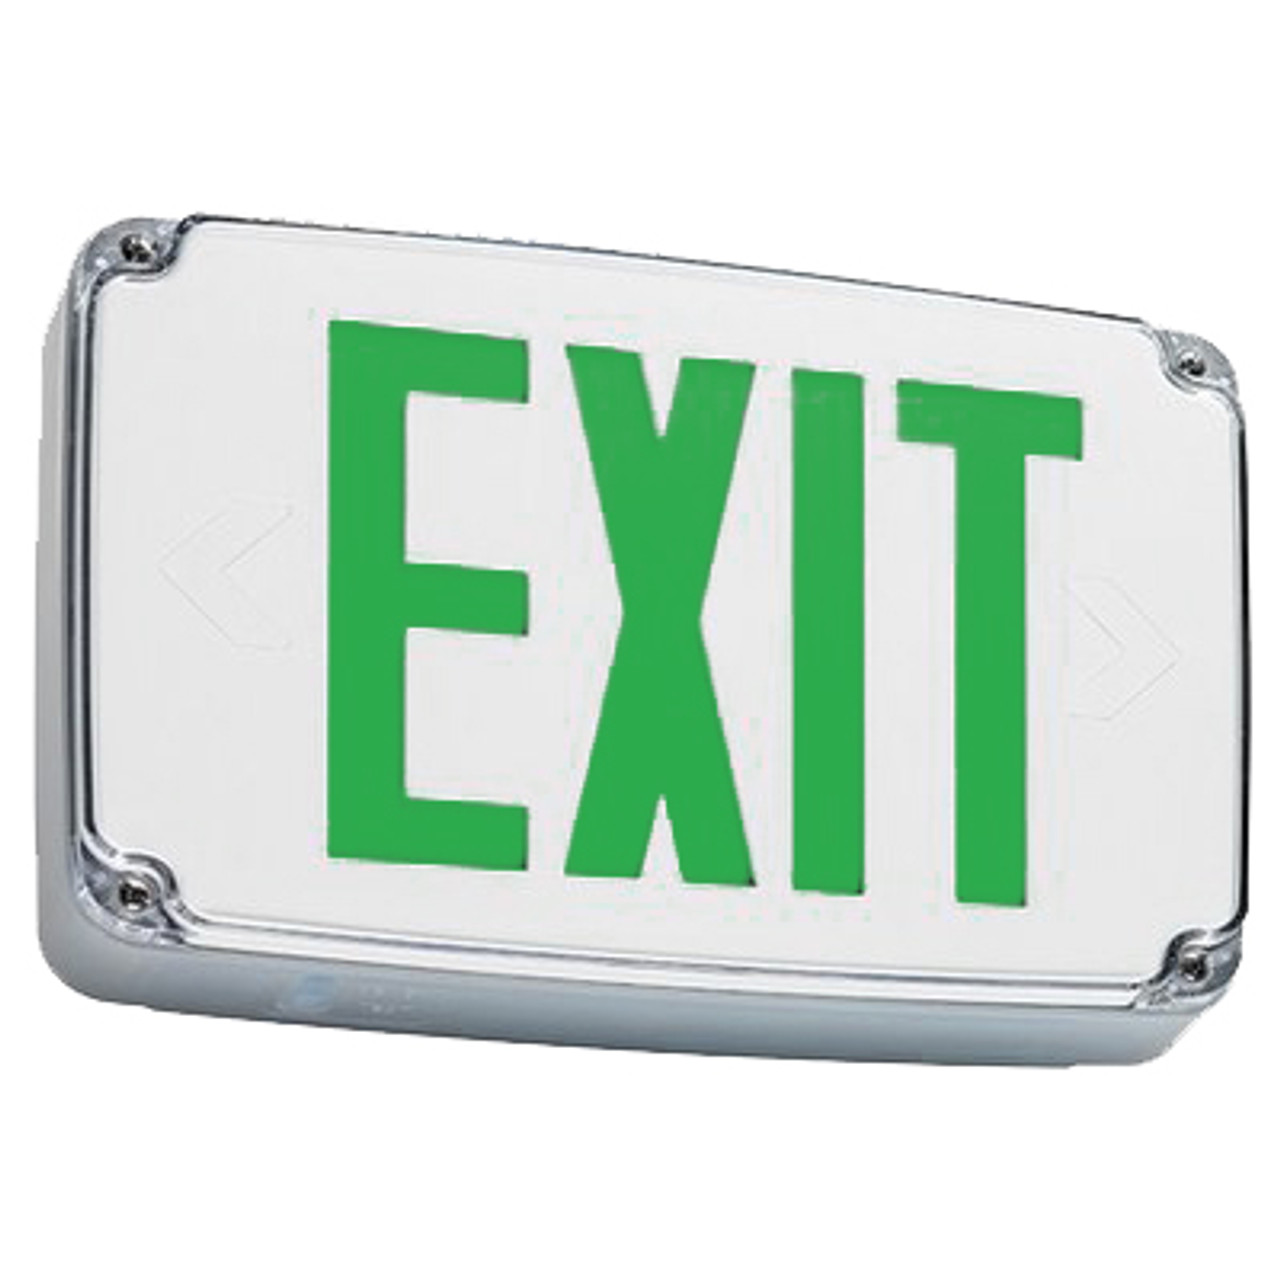 Outdoor Exit Sign with Green Letters